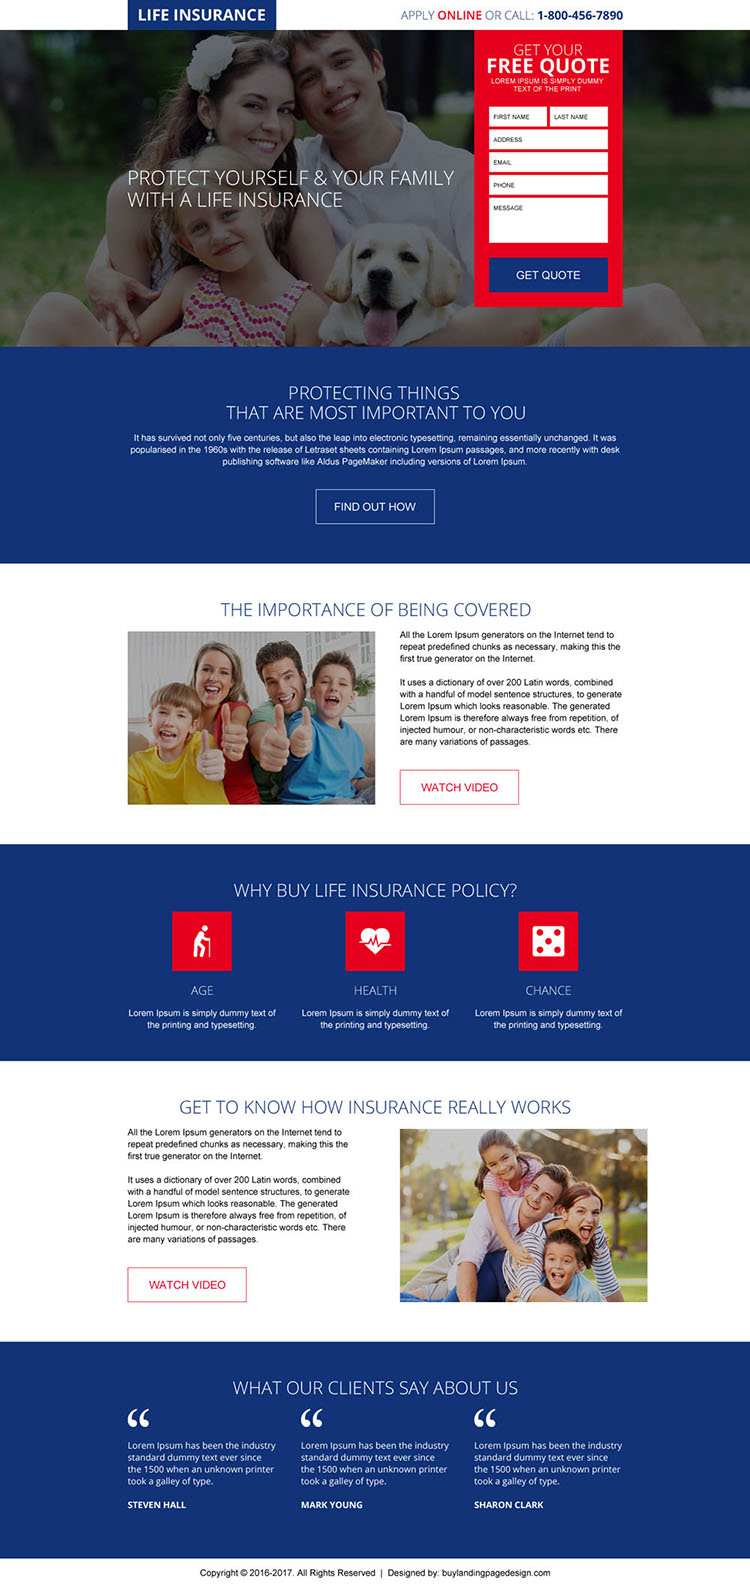 free quote lead capturing landing page design for life insurance